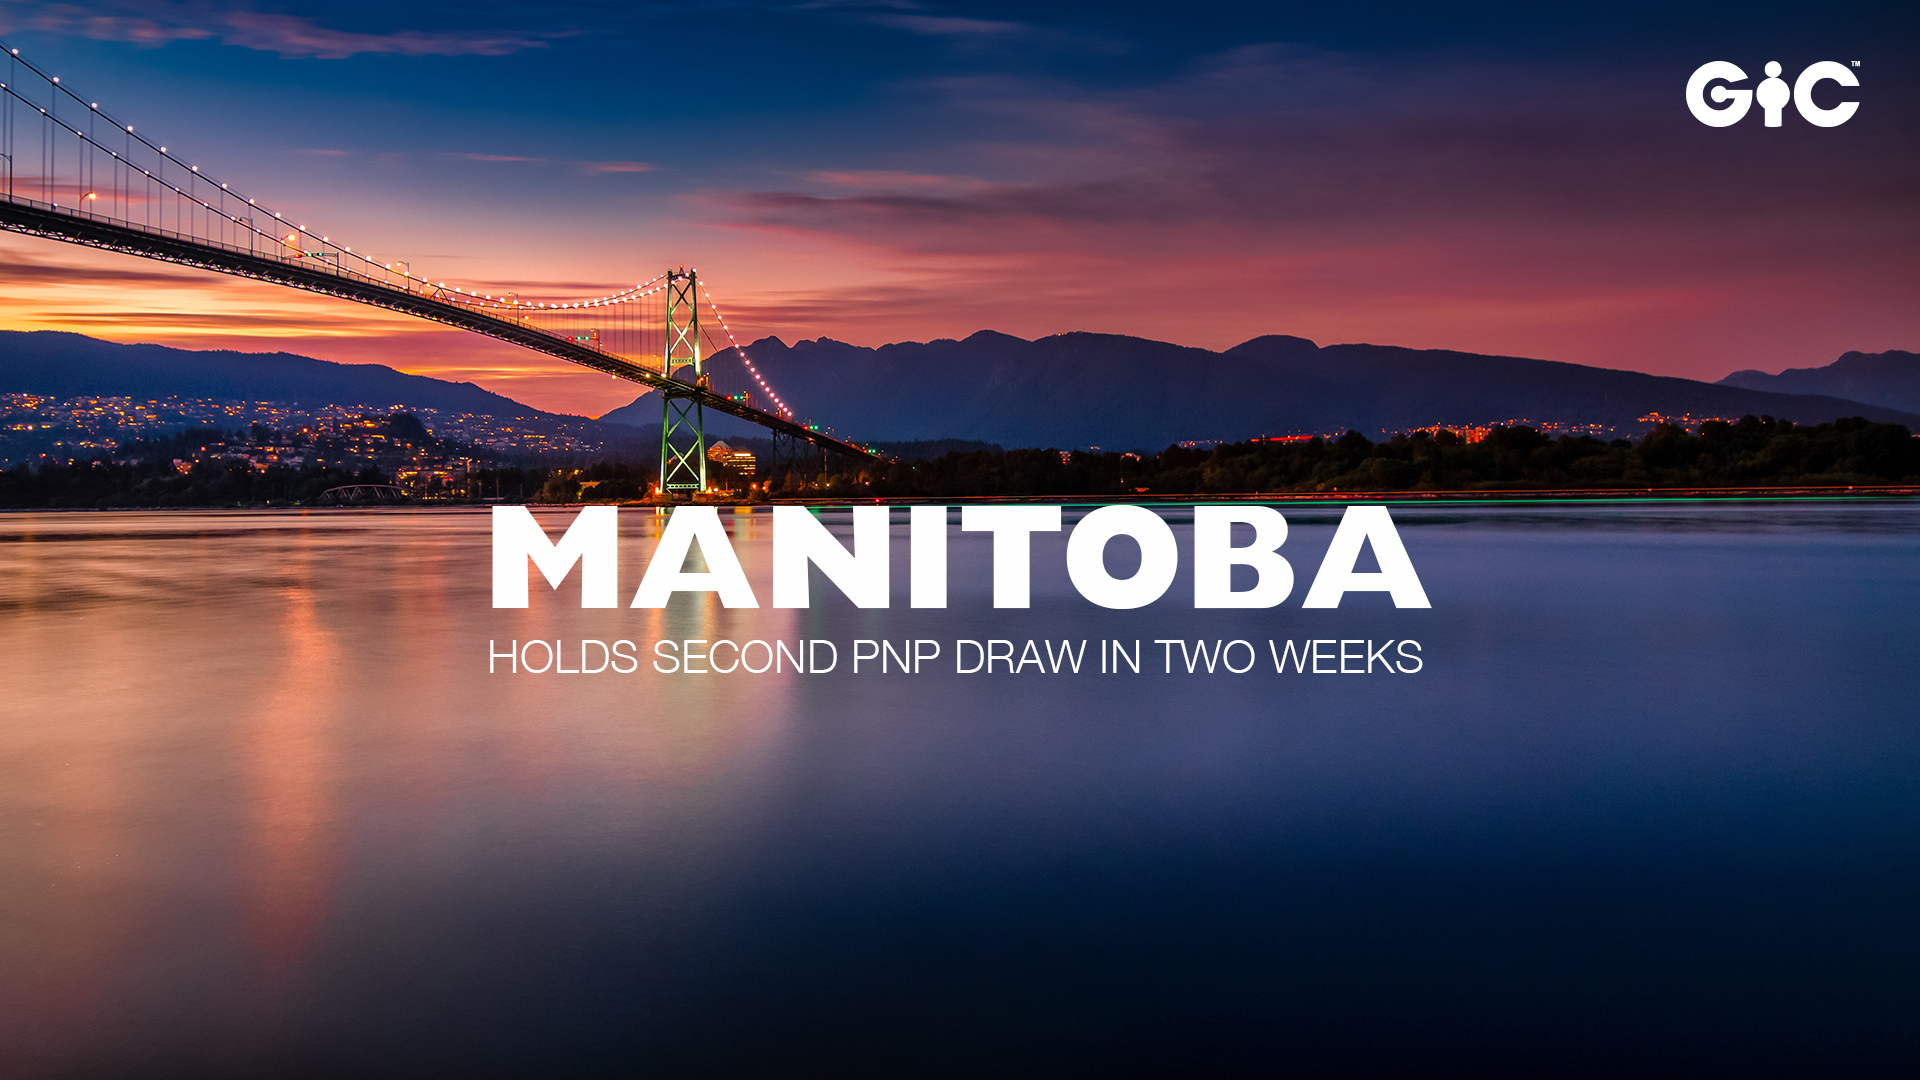 Manitoba holds second PNP draw in two weeks